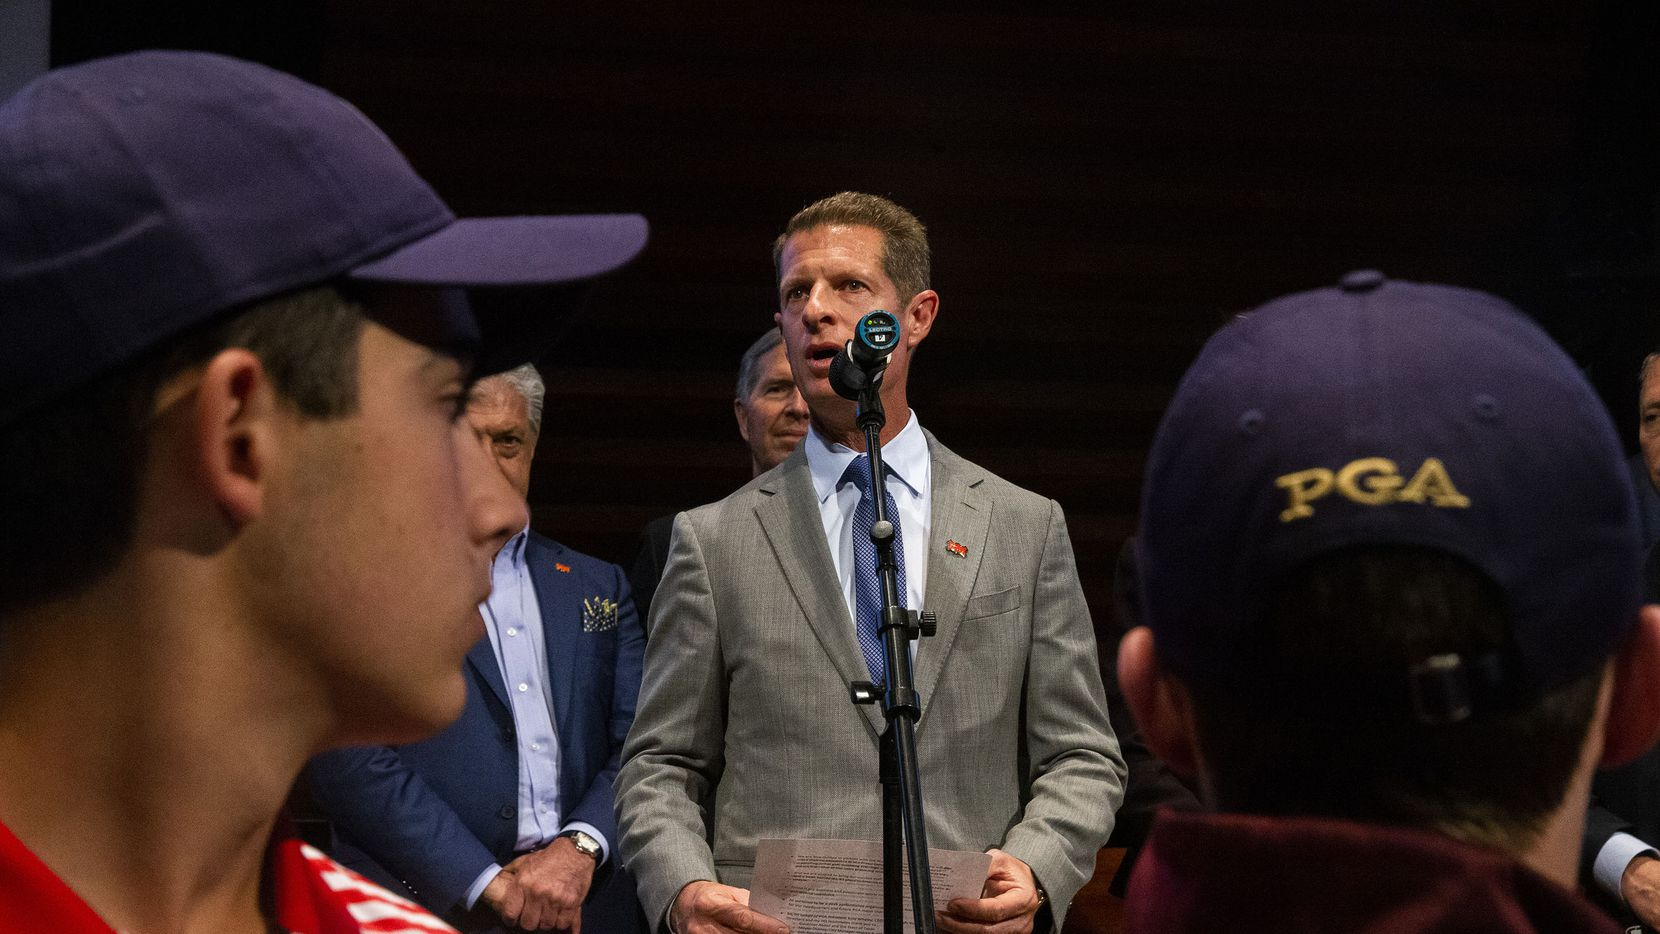 Darrell Crall, PGA of America Chief Operating Officer, makes remarks following a Frisco City Council meeting in this 2018 file photo.